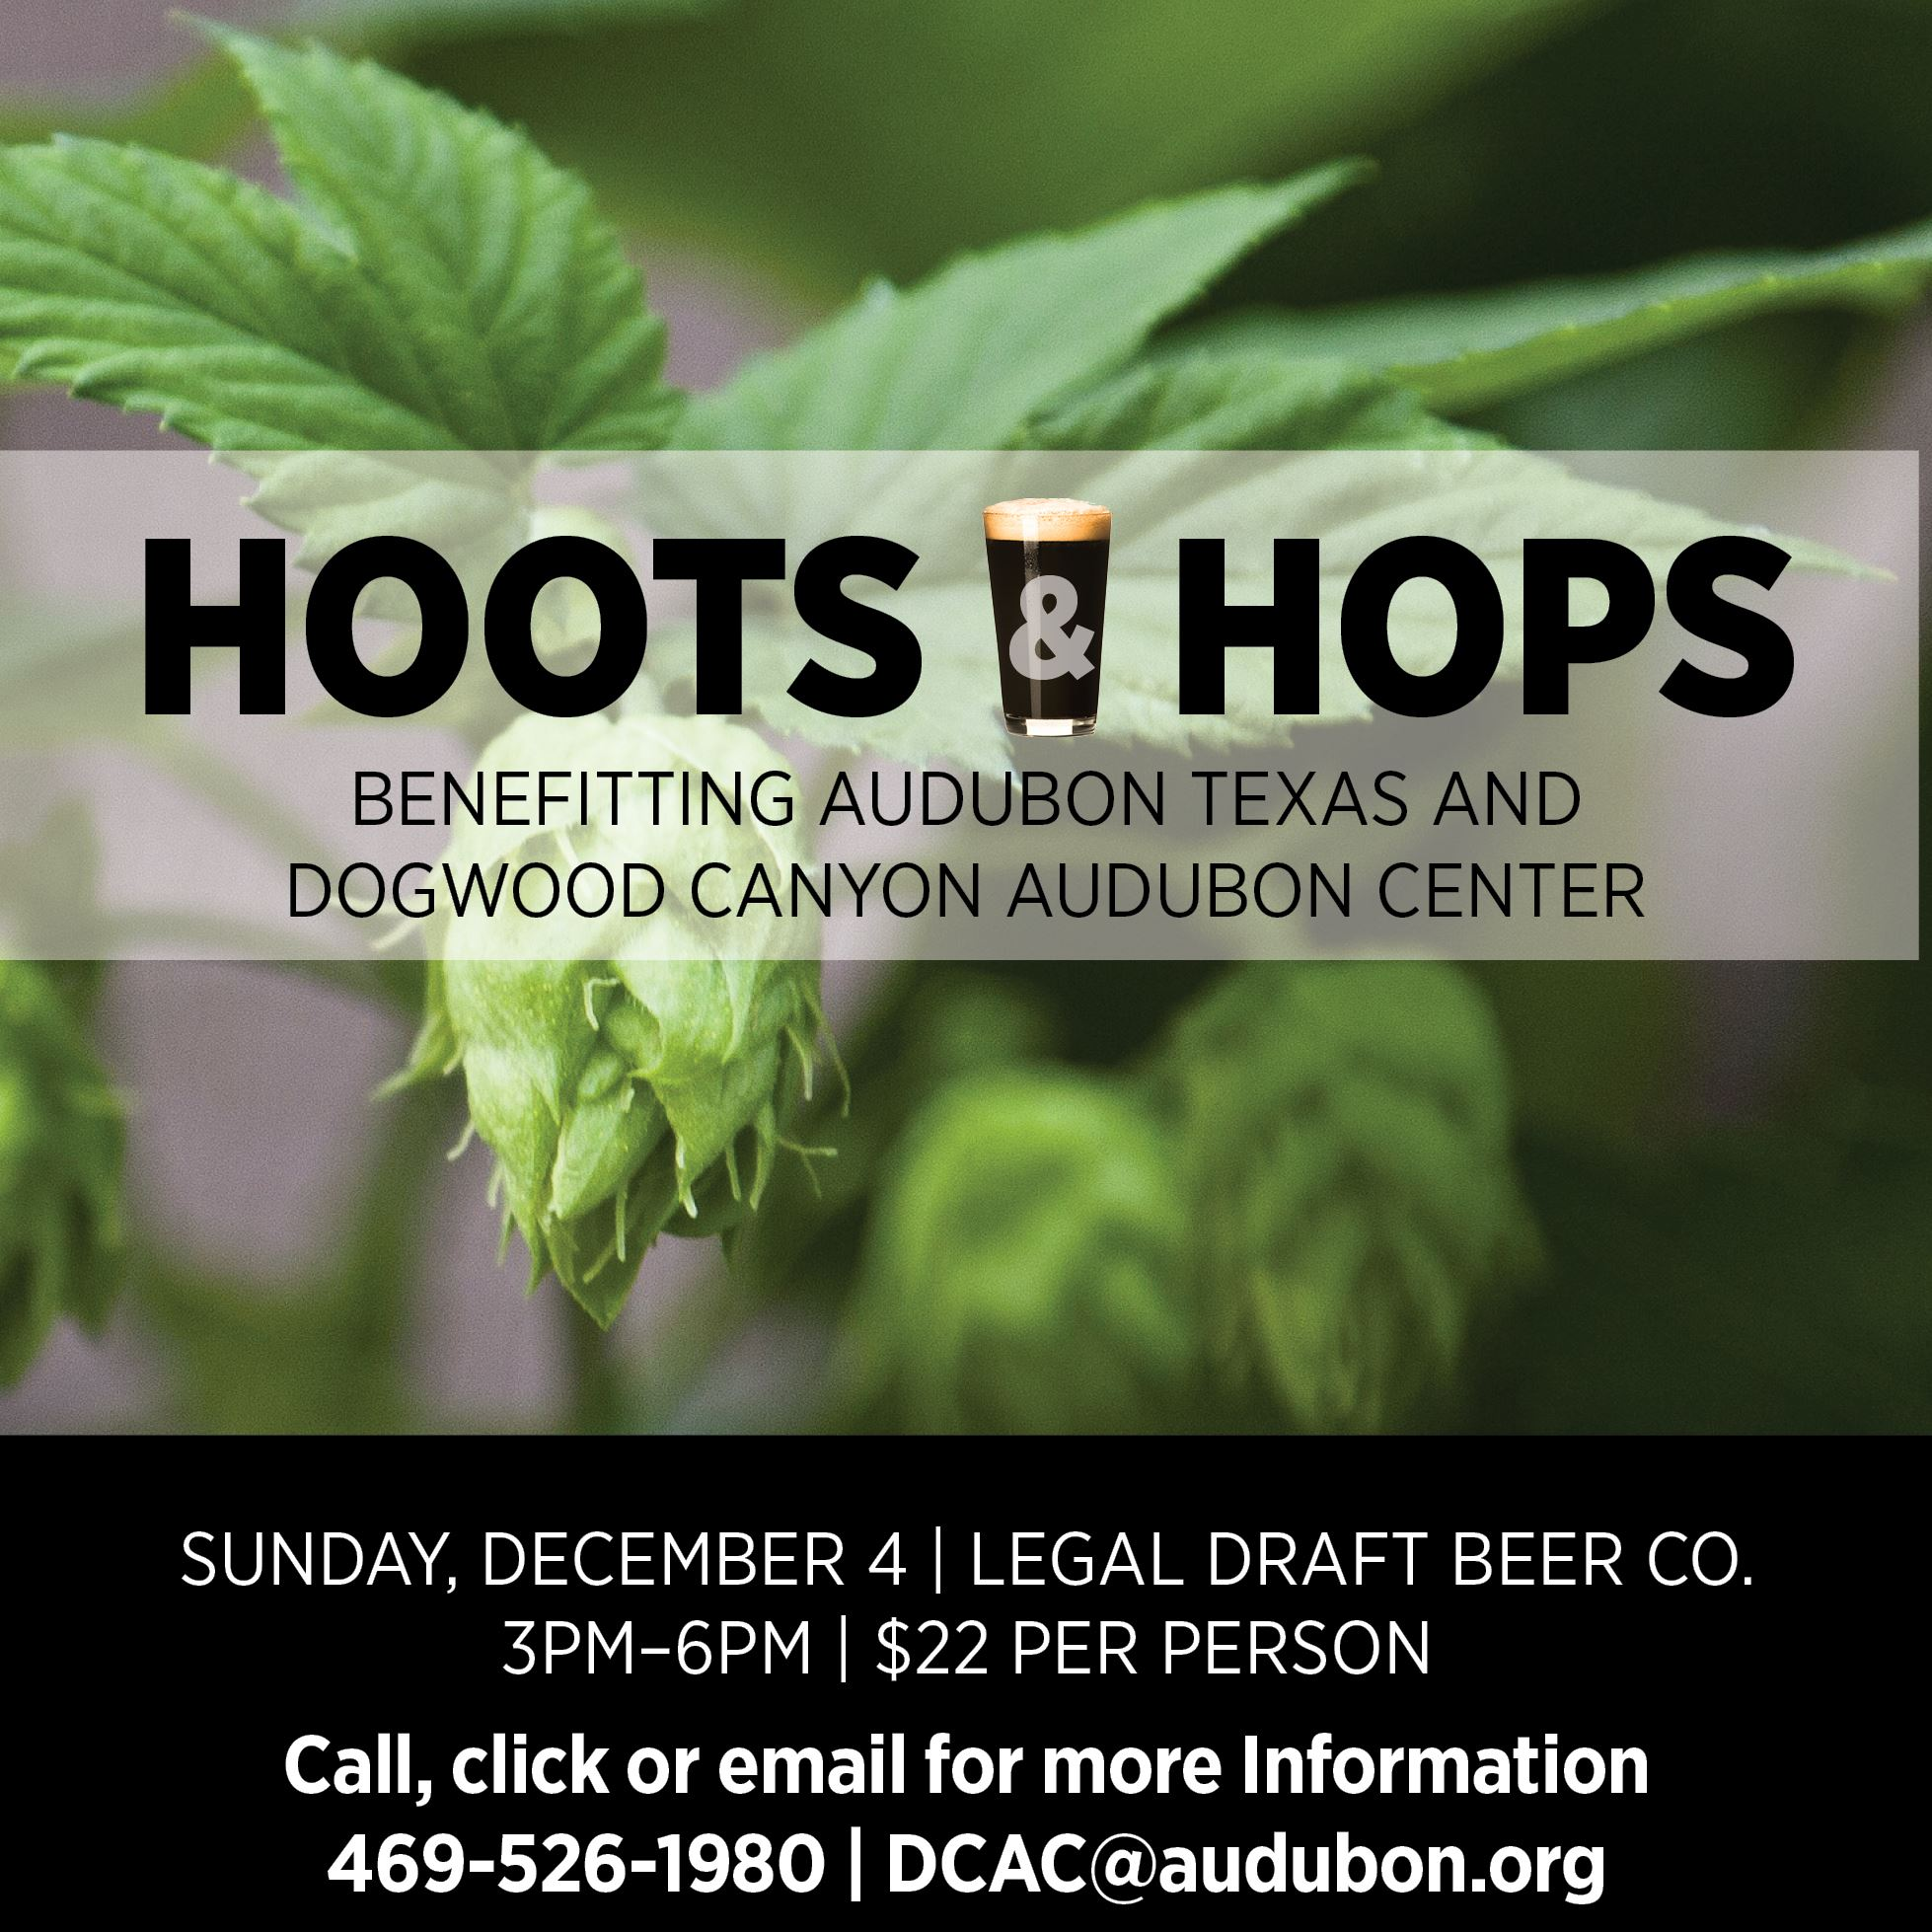 hoots and hops